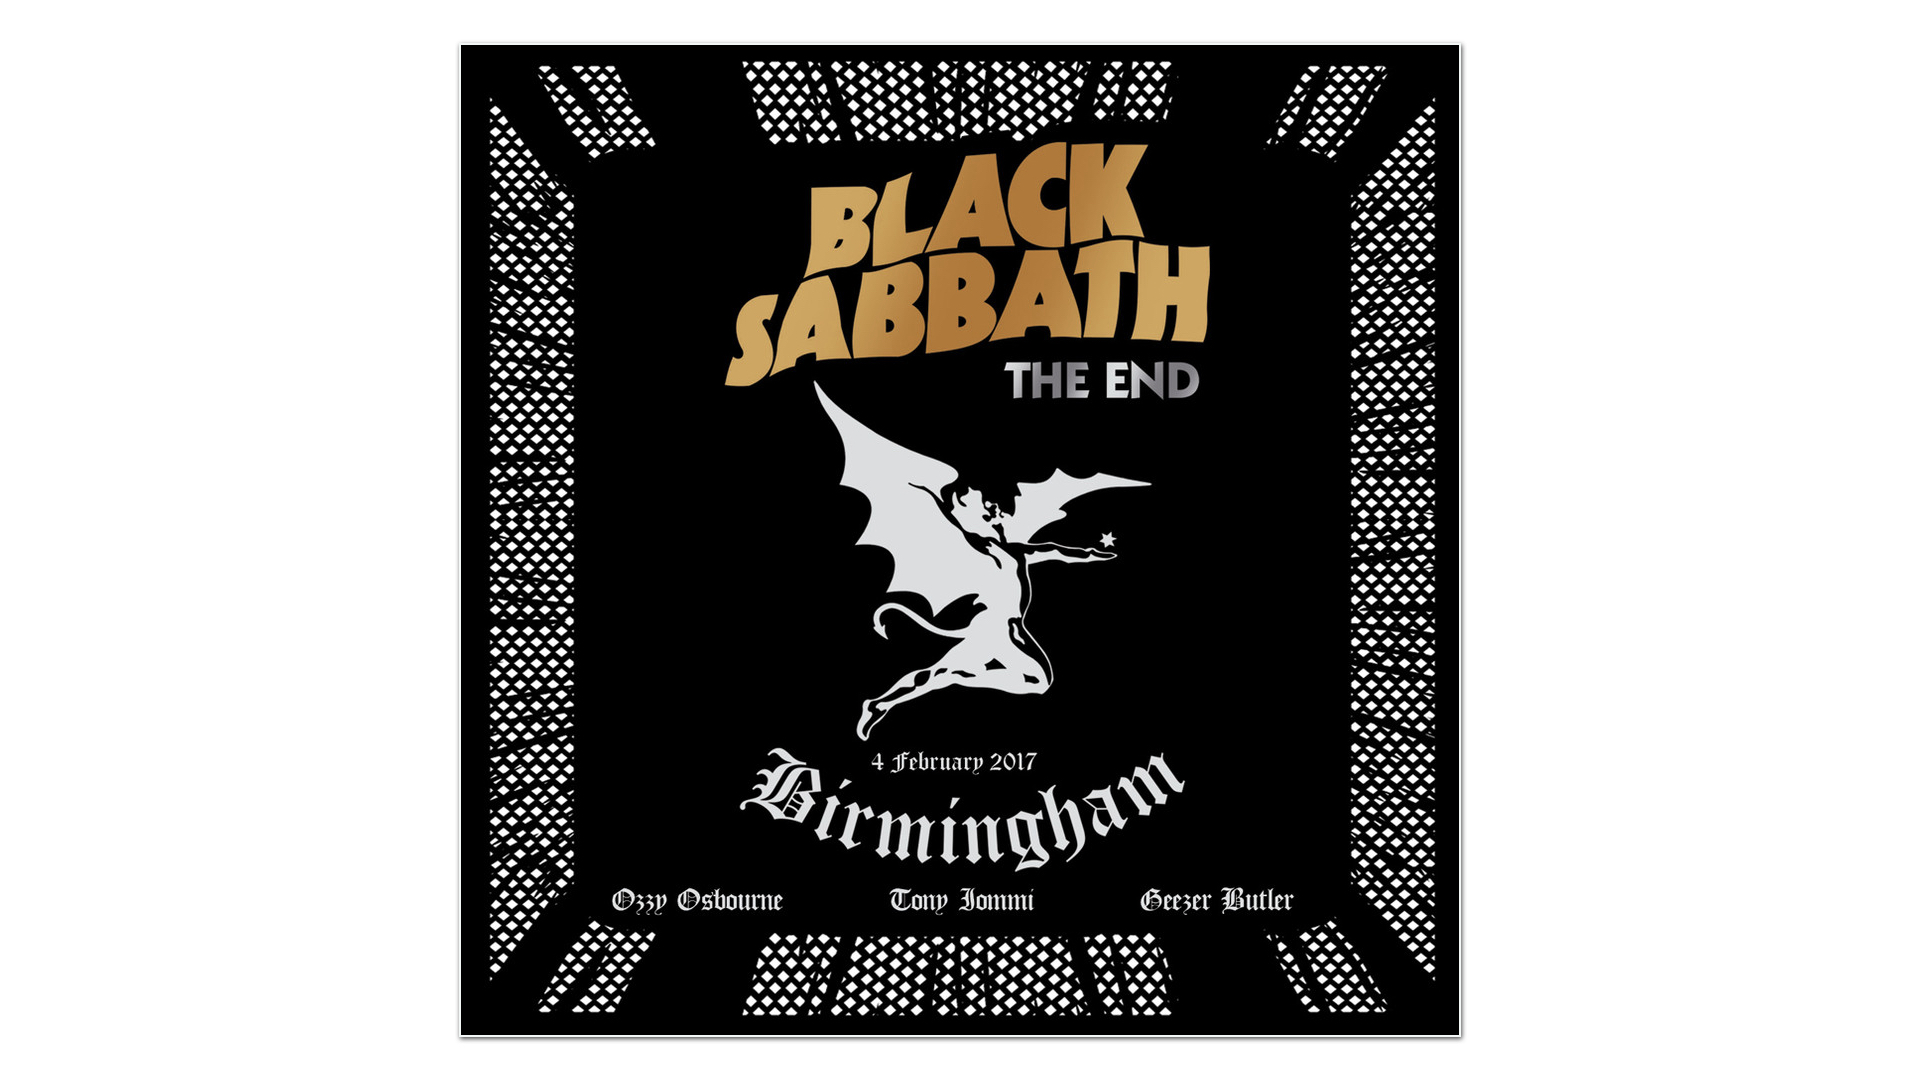 black sabbath closes its final chapter with the end live in birmingham 2017 albums that rock. Black Bedroom Furniture Sets. Home Design Ideas